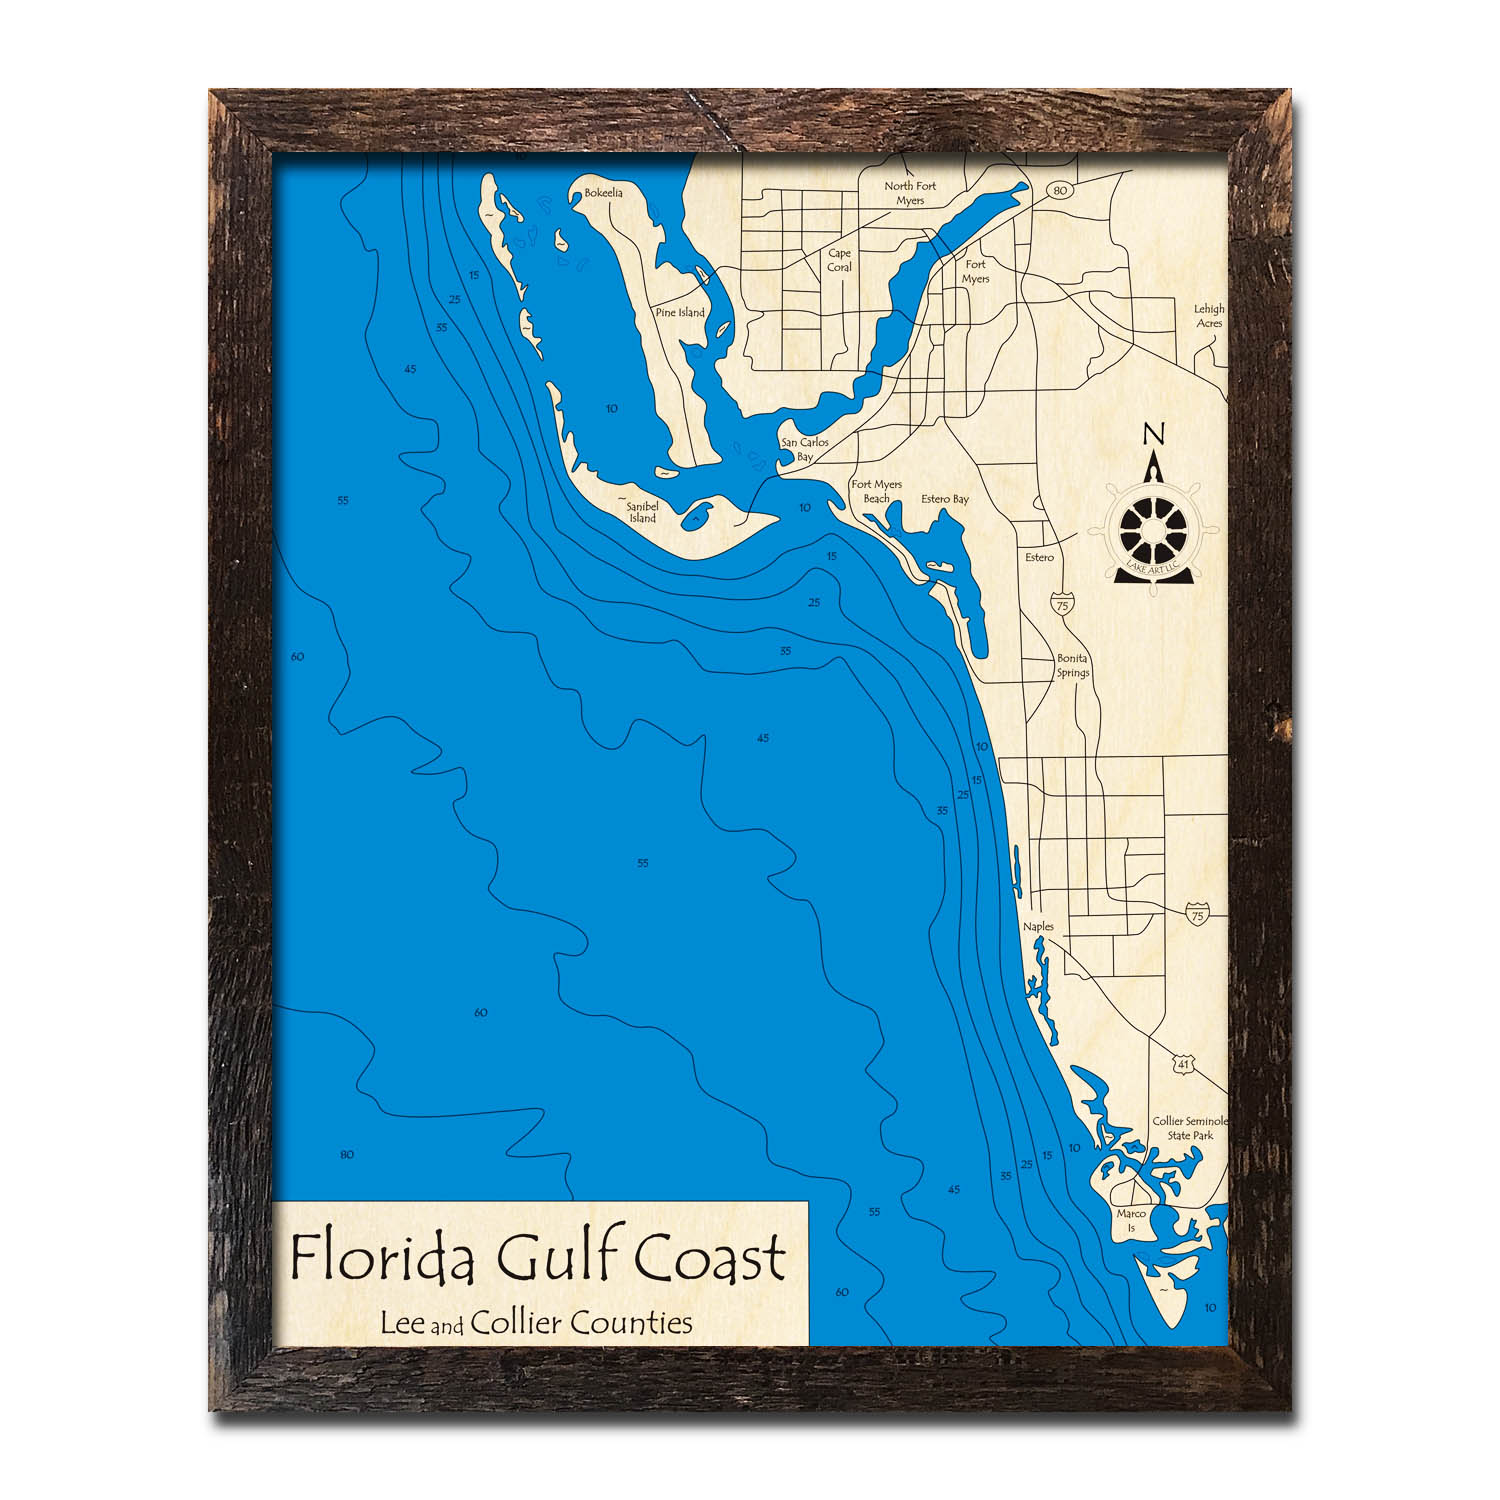 Florida Gulf Side Map.Florida Gulf Coast Fl Nautical Wood Maps